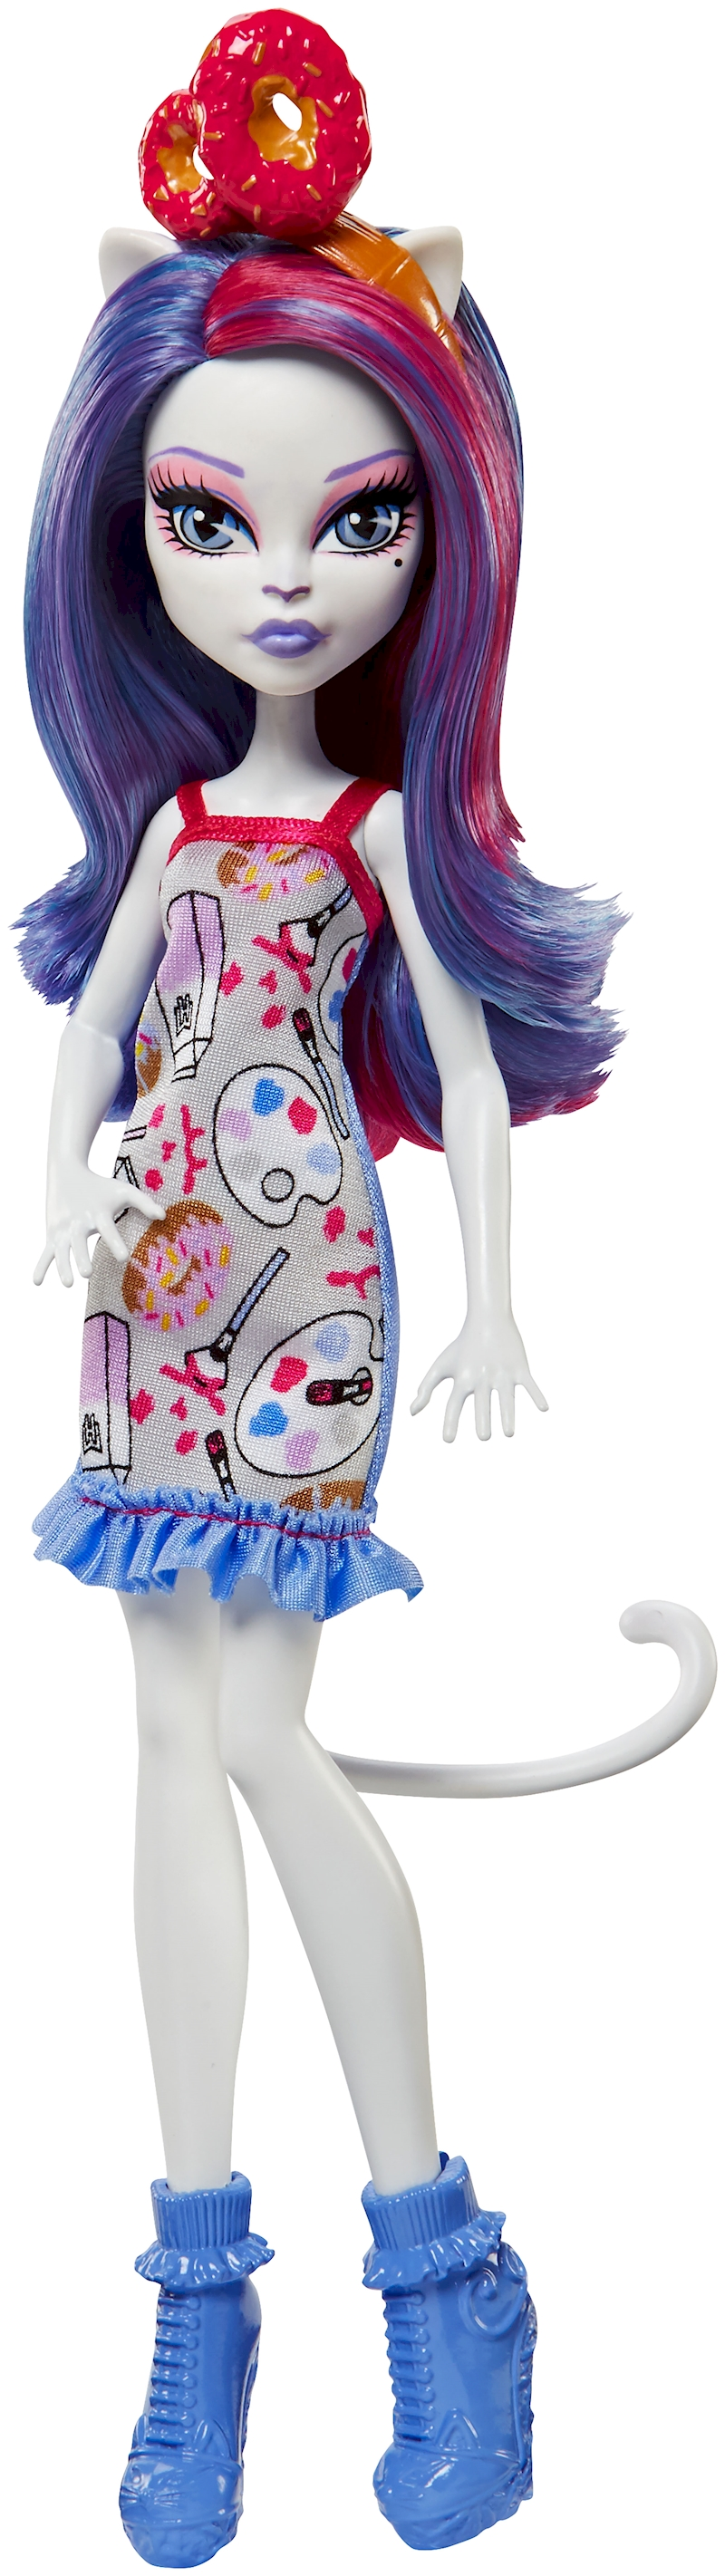 Catrine demew popular catrine demew doll buy cheap catrine demew doll - Catrine Demew Doll With Dessert Themed Dress And Hairpiece Shop Monster High Doll Accessories Playsets Toys Monster High